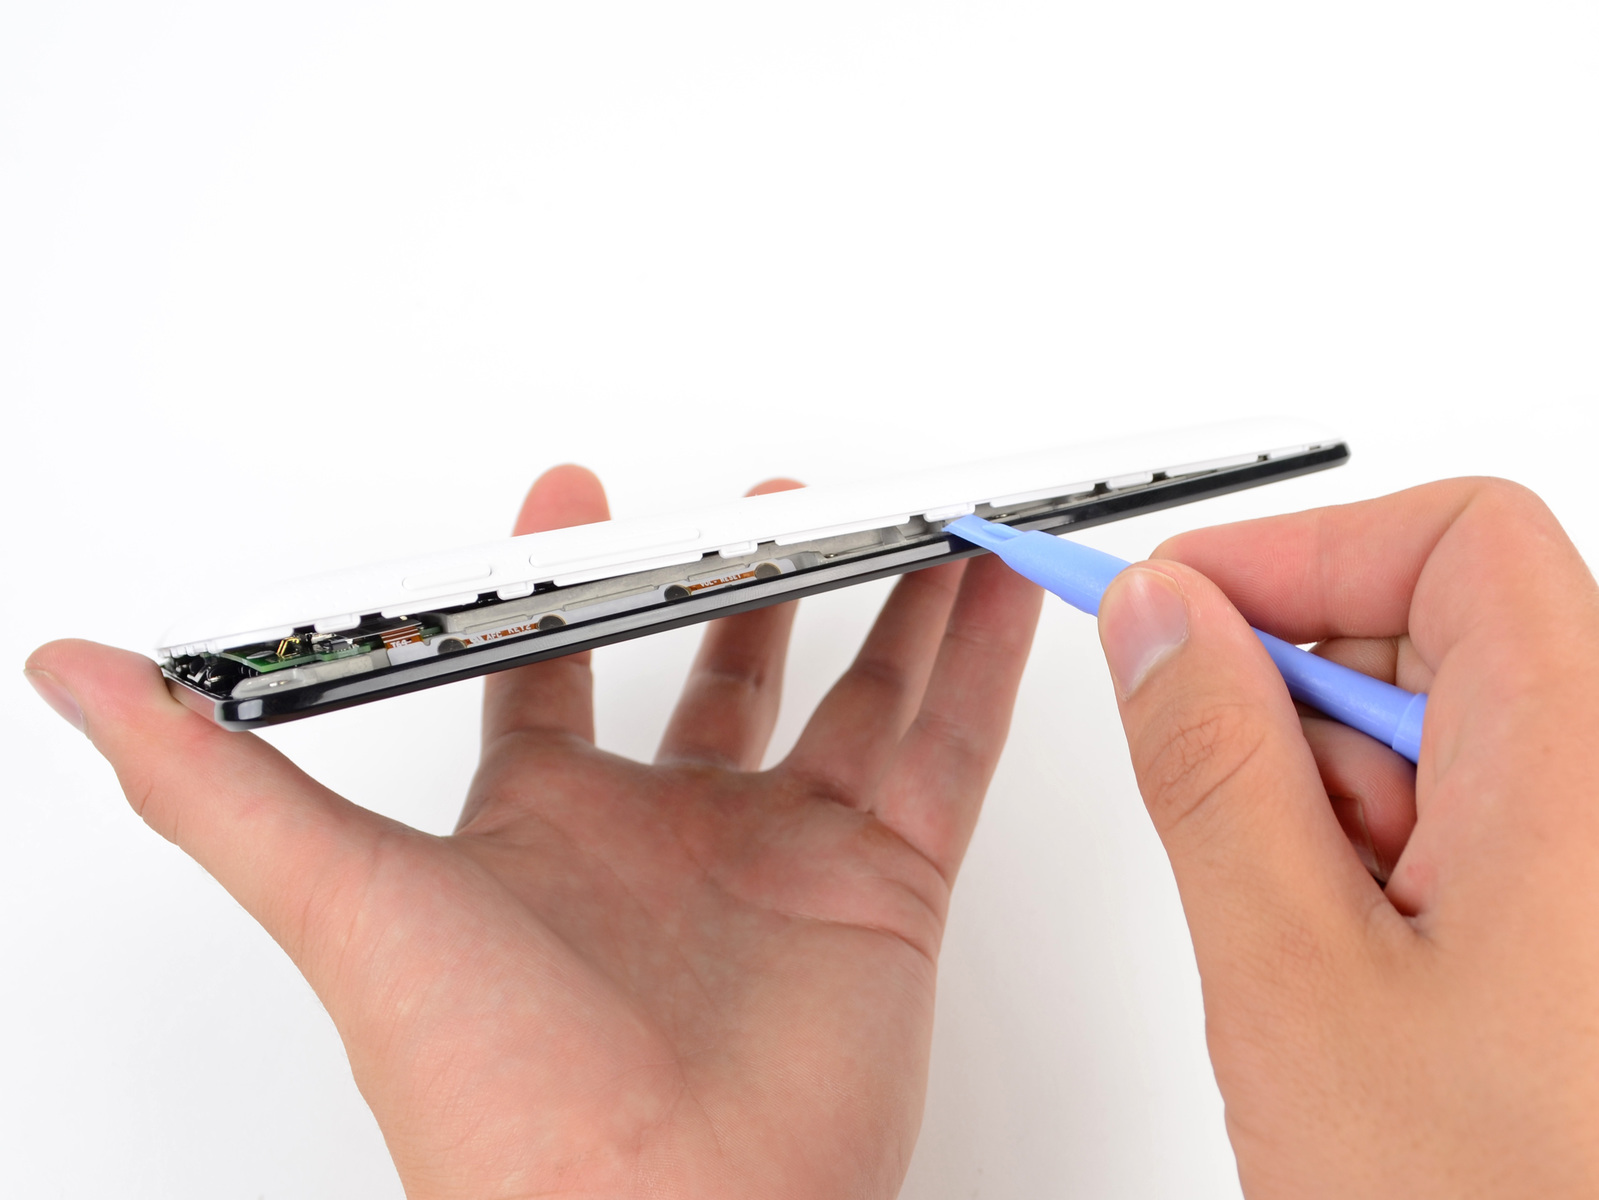 iFixit opened up the Nexus using one of its trusty plastic opening tools.